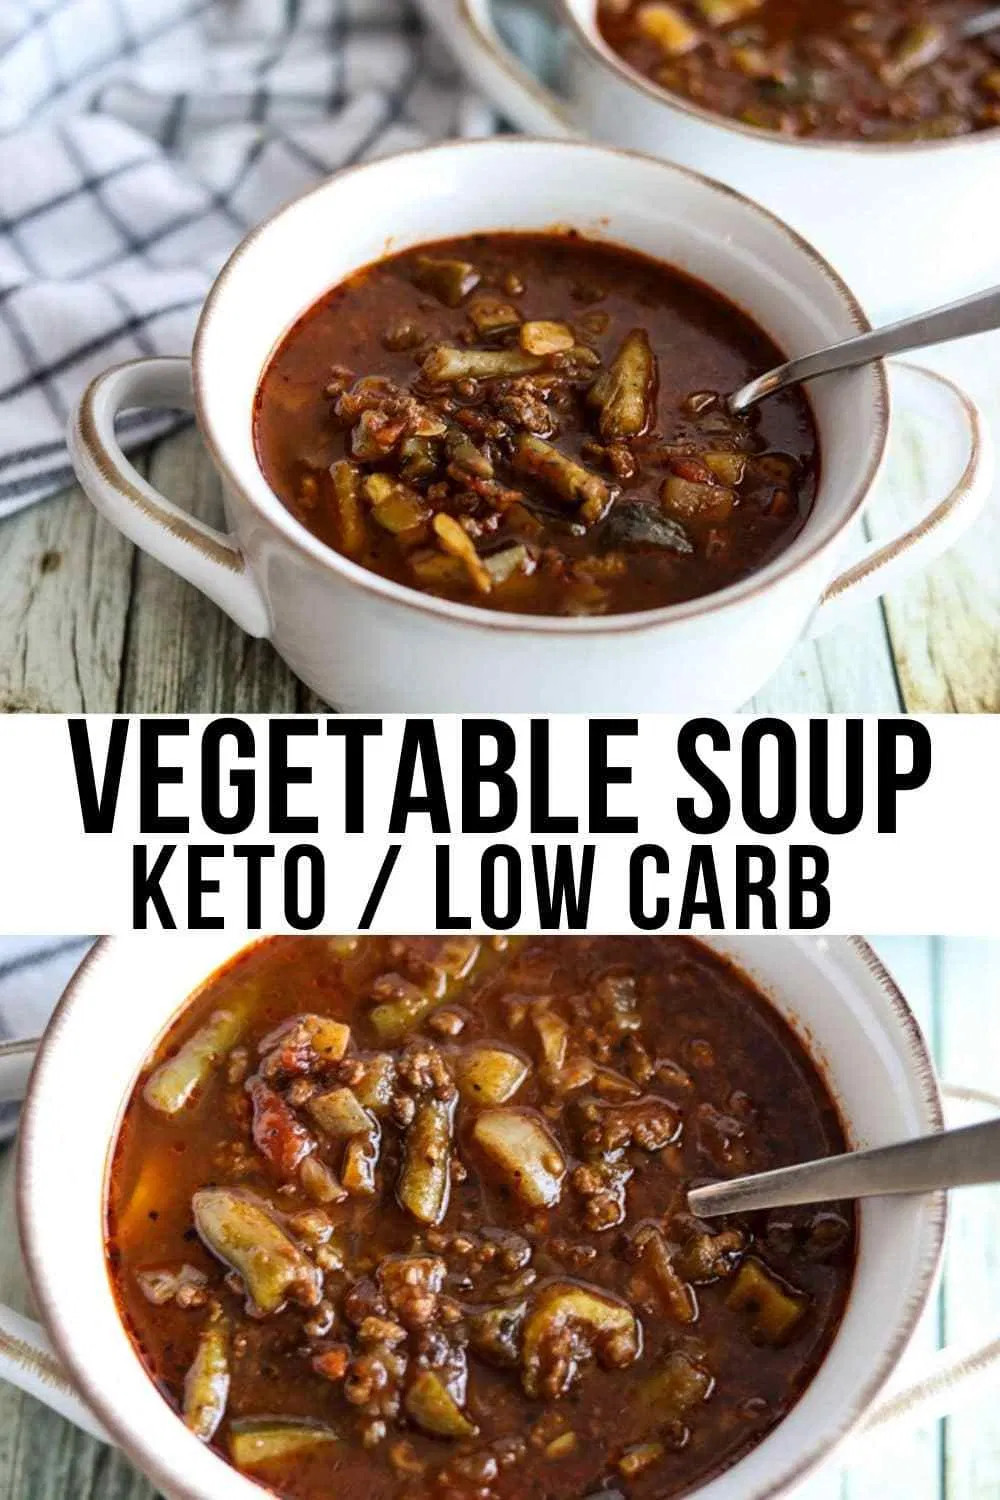 Ground Beef Keto Soup Recipes  Down Home Keto Ve able Soup with Ground Beef